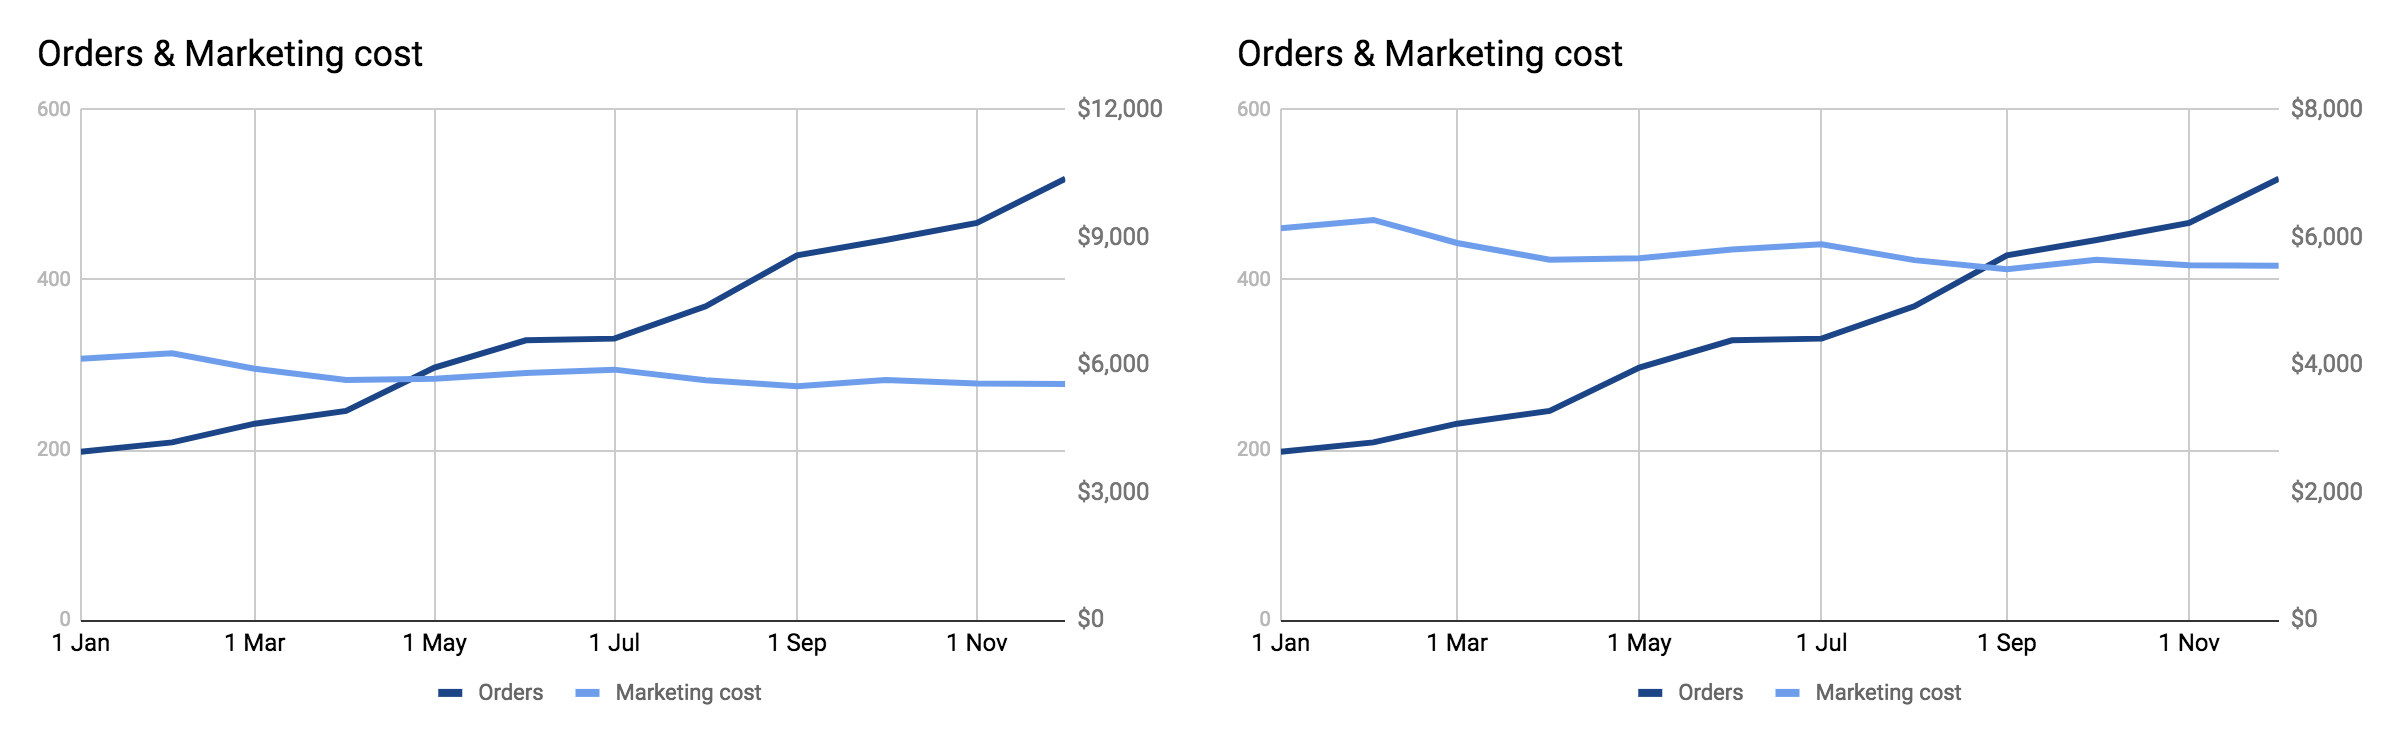 orders-marketing-cost.png